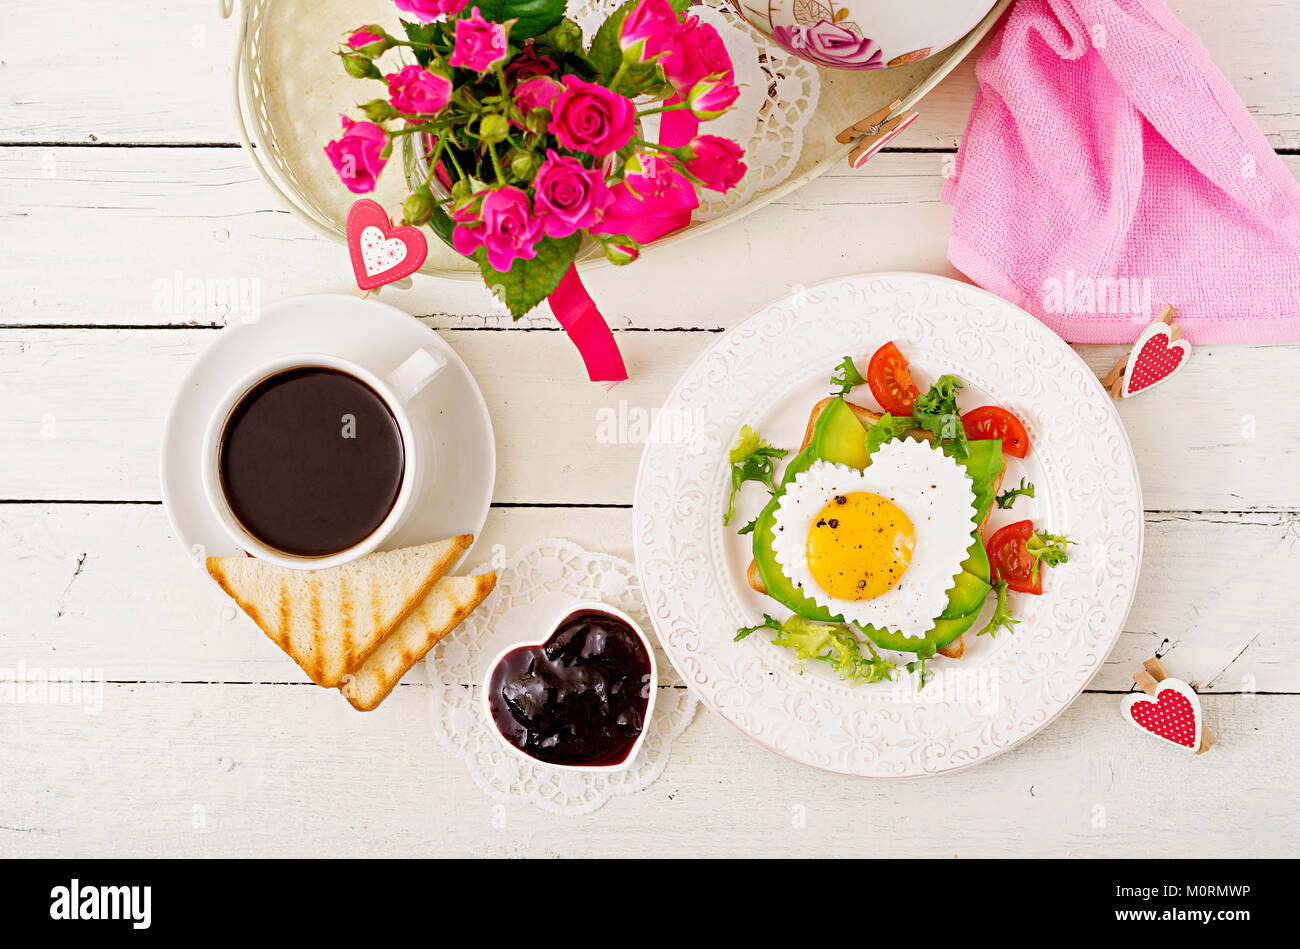 Breakfast on Valentine's Day - sandwich of fried egg in the shape of a heart, avocado and fresh vegetables. - Stock Image